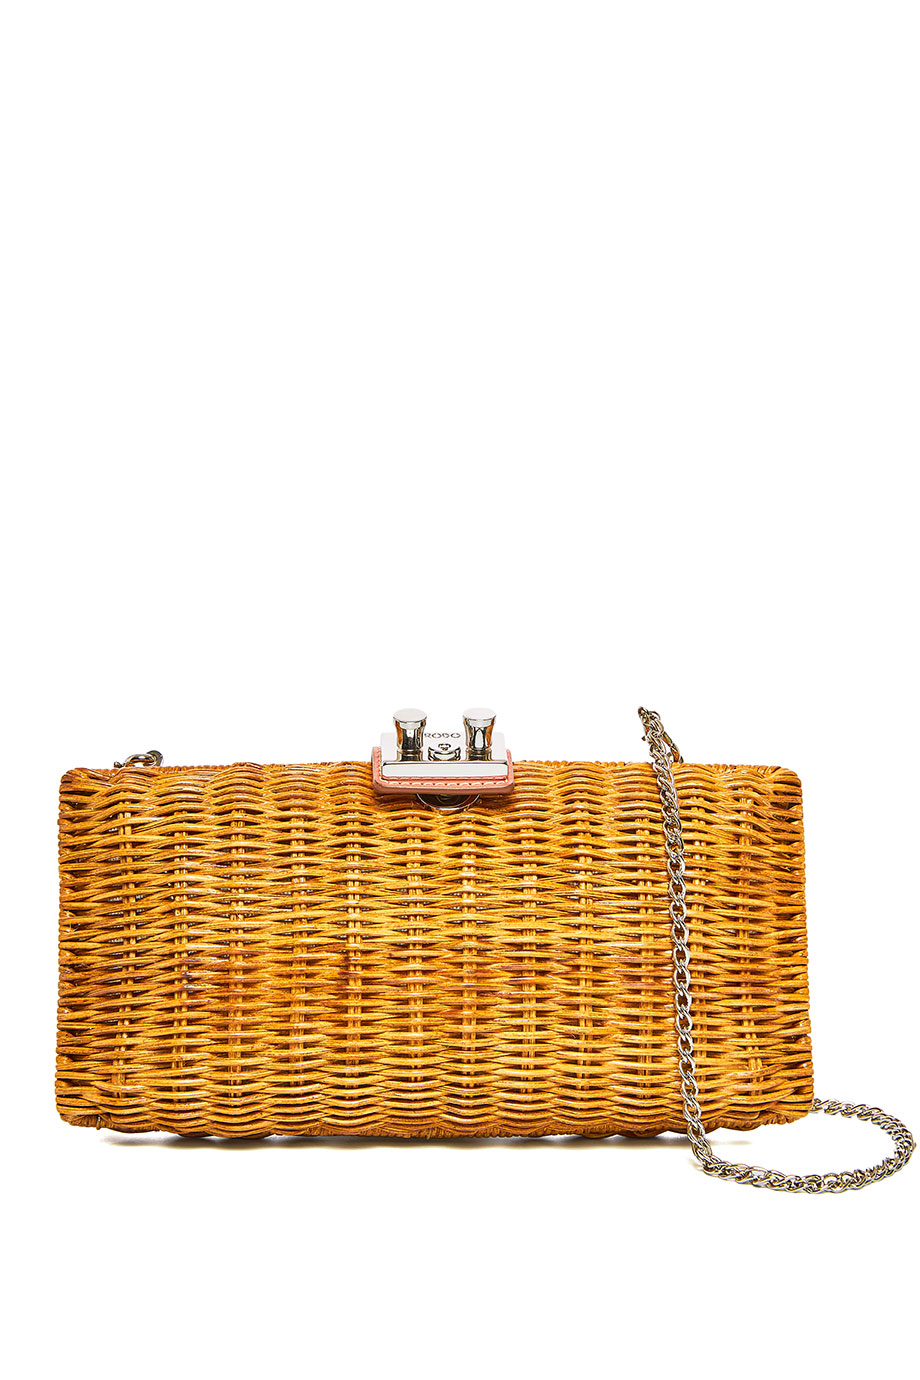 ΤΣΑΝΤΑ CLUTCH SQ COK